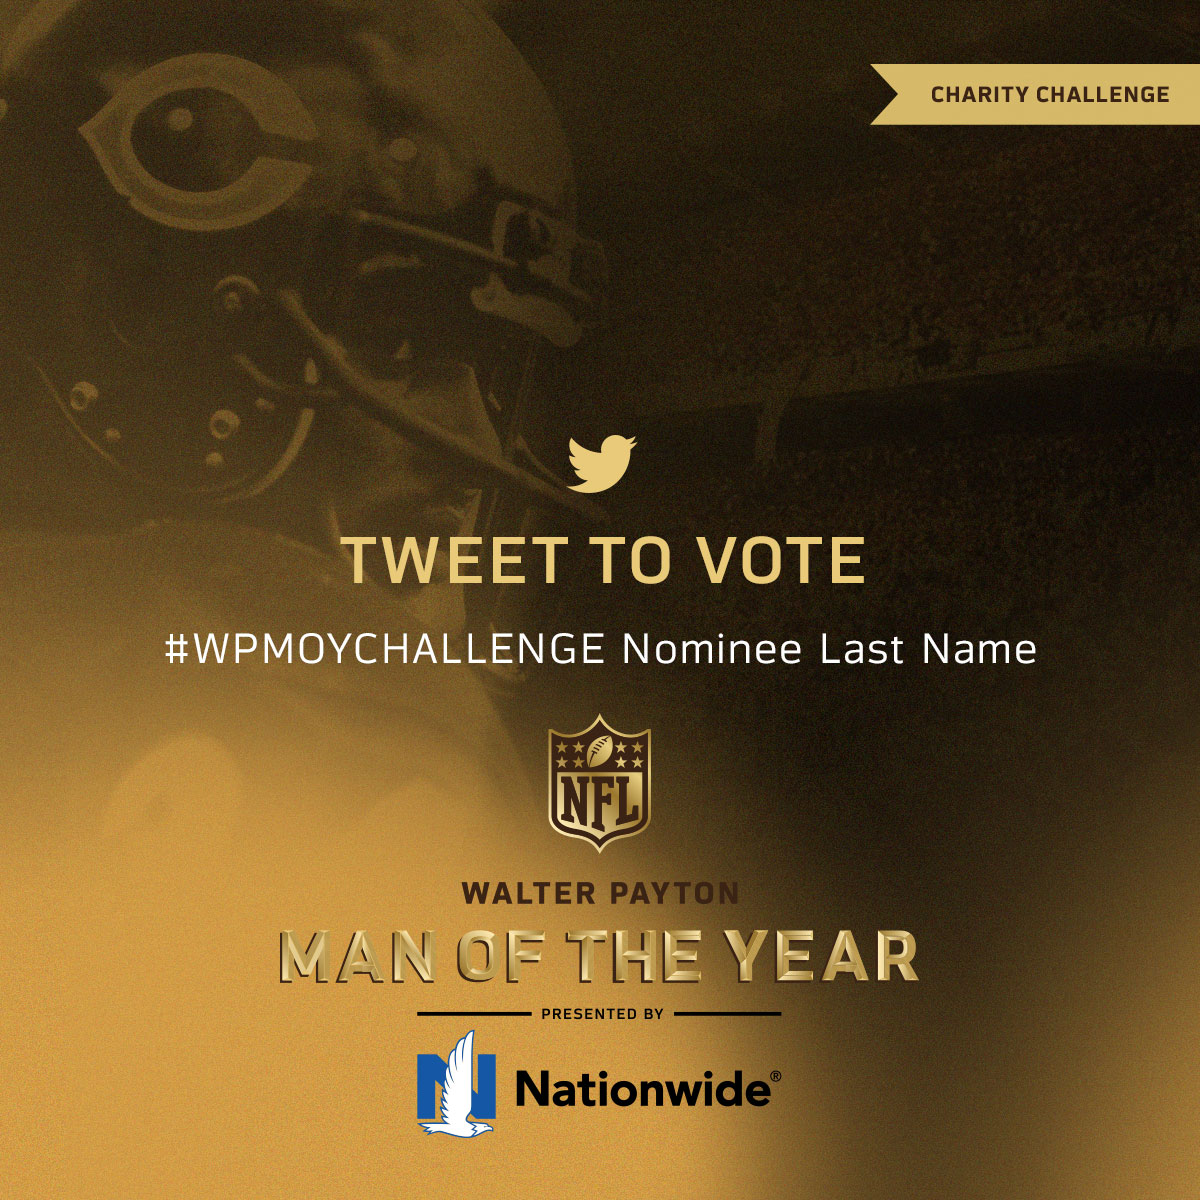 Vote for the #WPMOY nominee you want to win $25,000 for the charity of their choice.  Tweet #WPMOYChallenge and the nominee's last name to vote on Twitter!  (by @Nationwide)